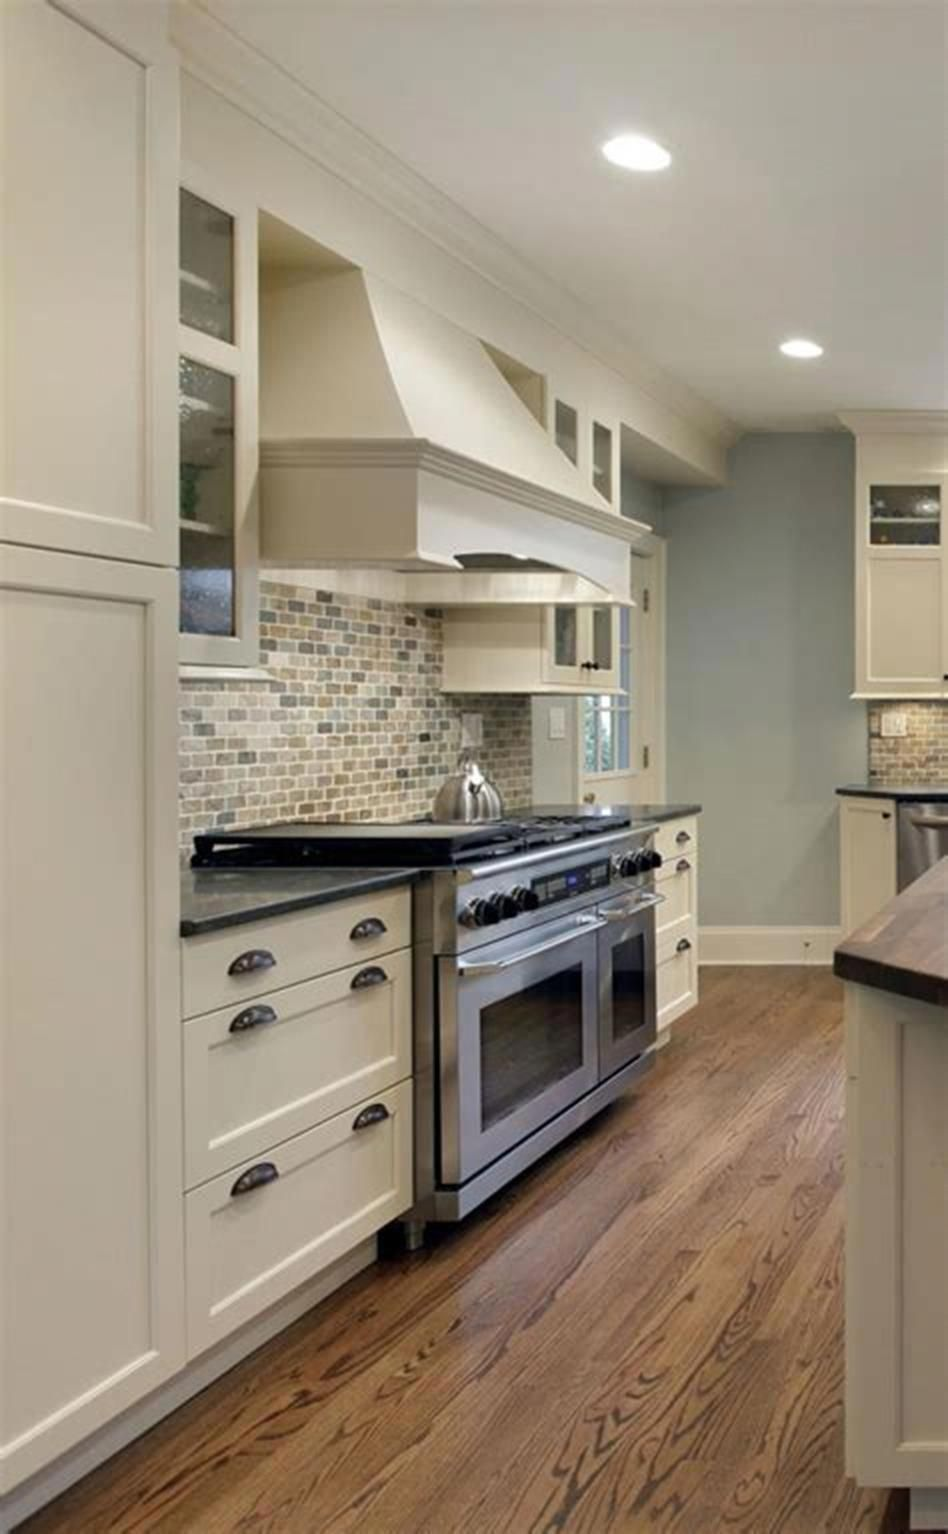 Seriously Appealing Daisy Kitchen Decor Off White Kitchen Cabinets Black Granite Countertops Off White Kitchens